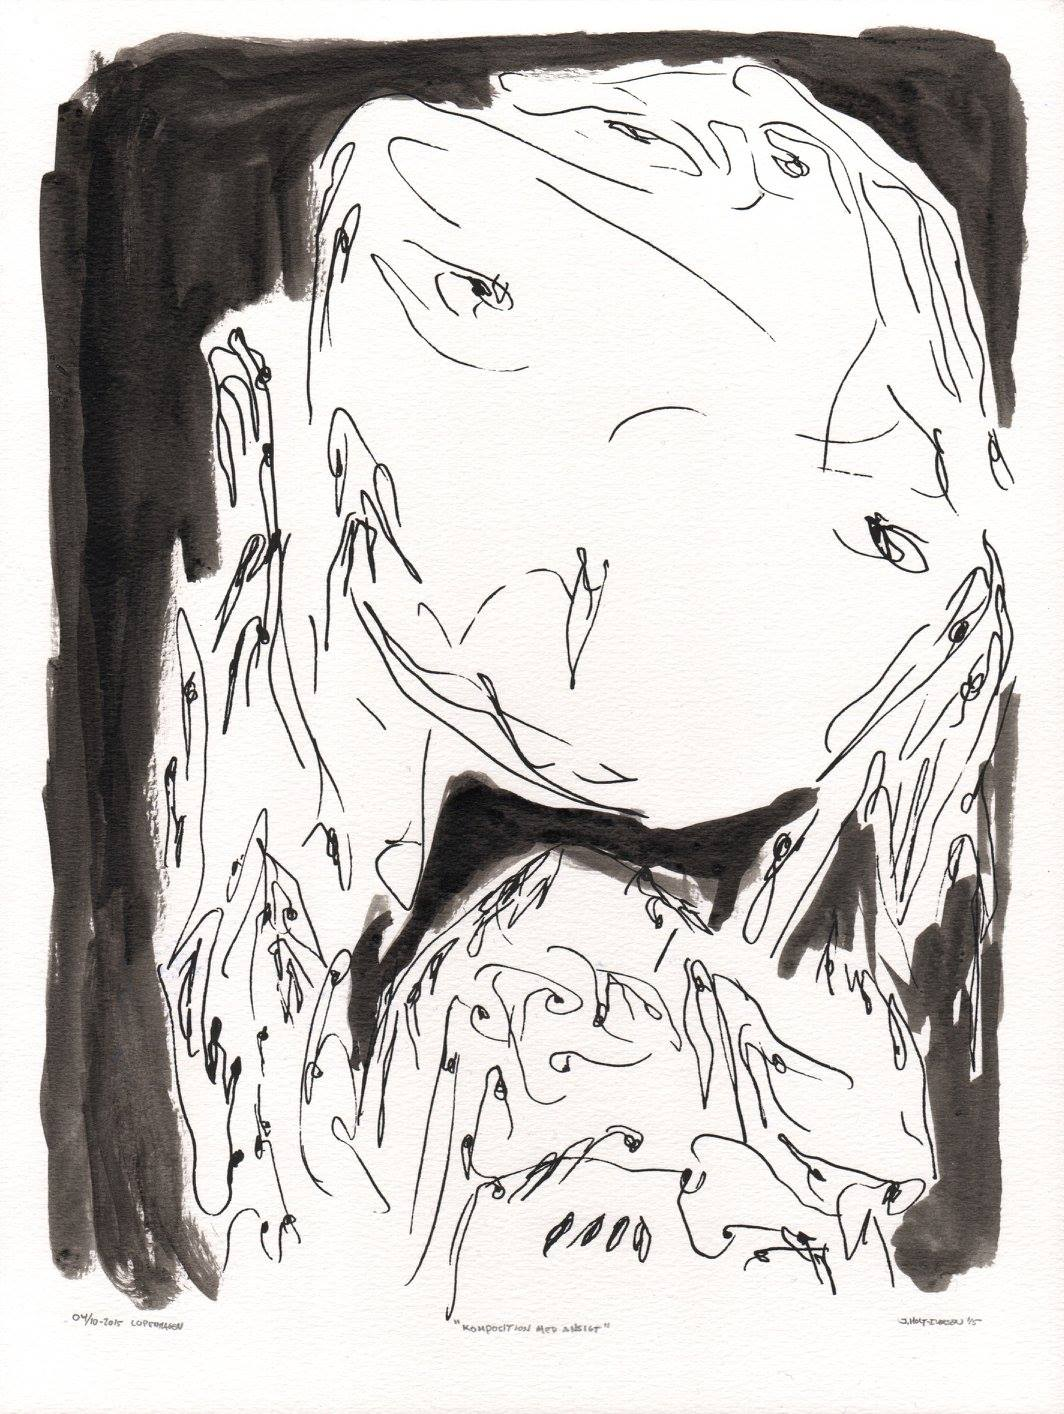 Johannes HOLT-IVERSEN (1989) Denmark Composition With a Face, 2015 Ink on paper, 24 x 32 cm